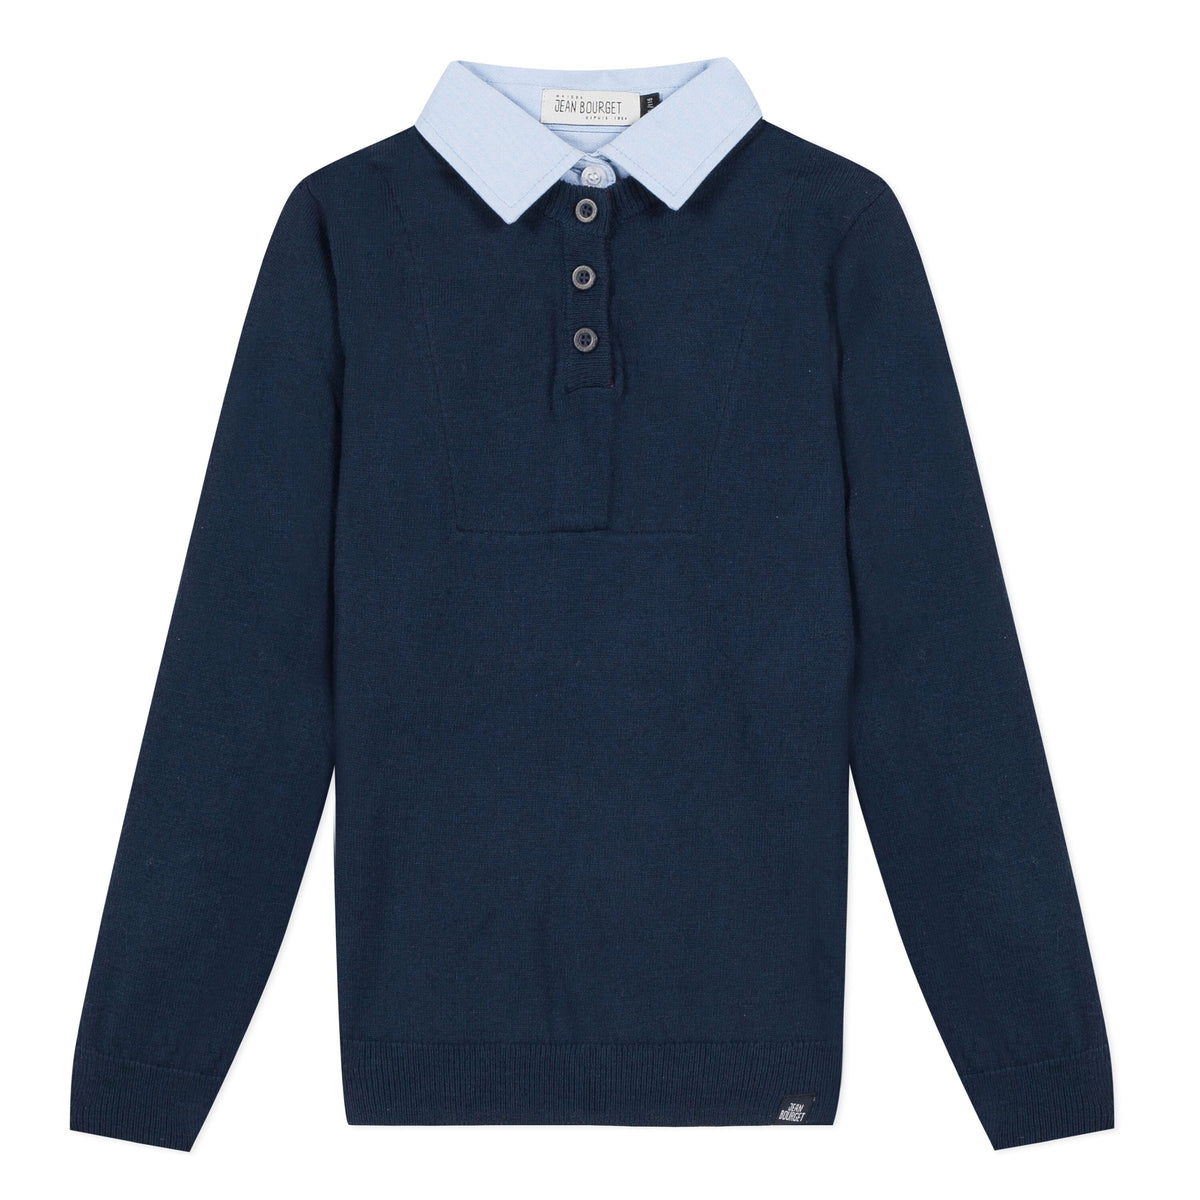 Classic revisited, this long-sleeved navy wool knit features a sky cotton shirt collar and burgundy seams. Three button closure marked Jean Bourget.